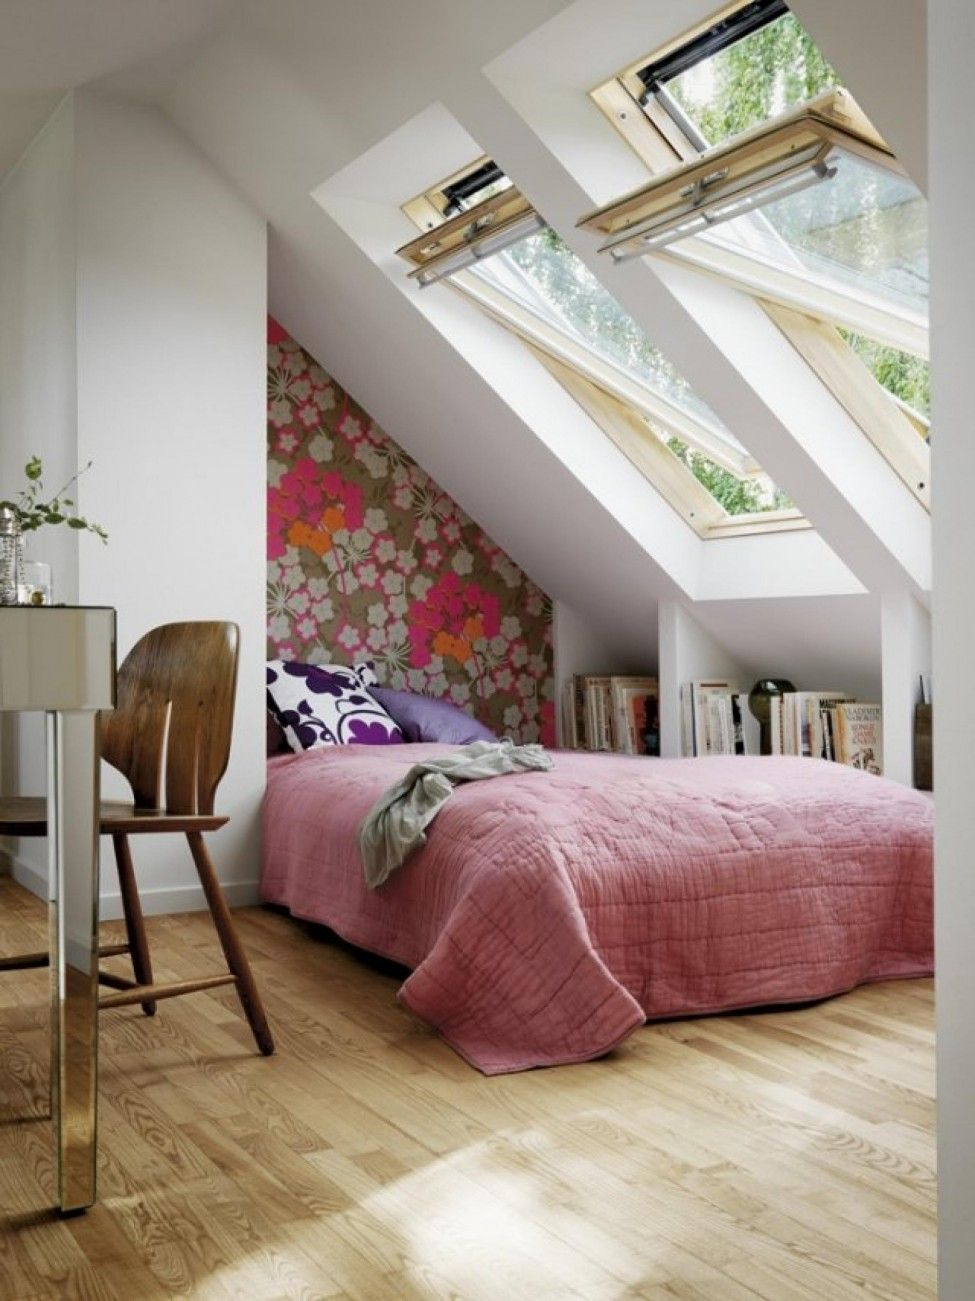 Beautiful home interior — Ideas For Small Bedrooms: Make It Look Bigger With